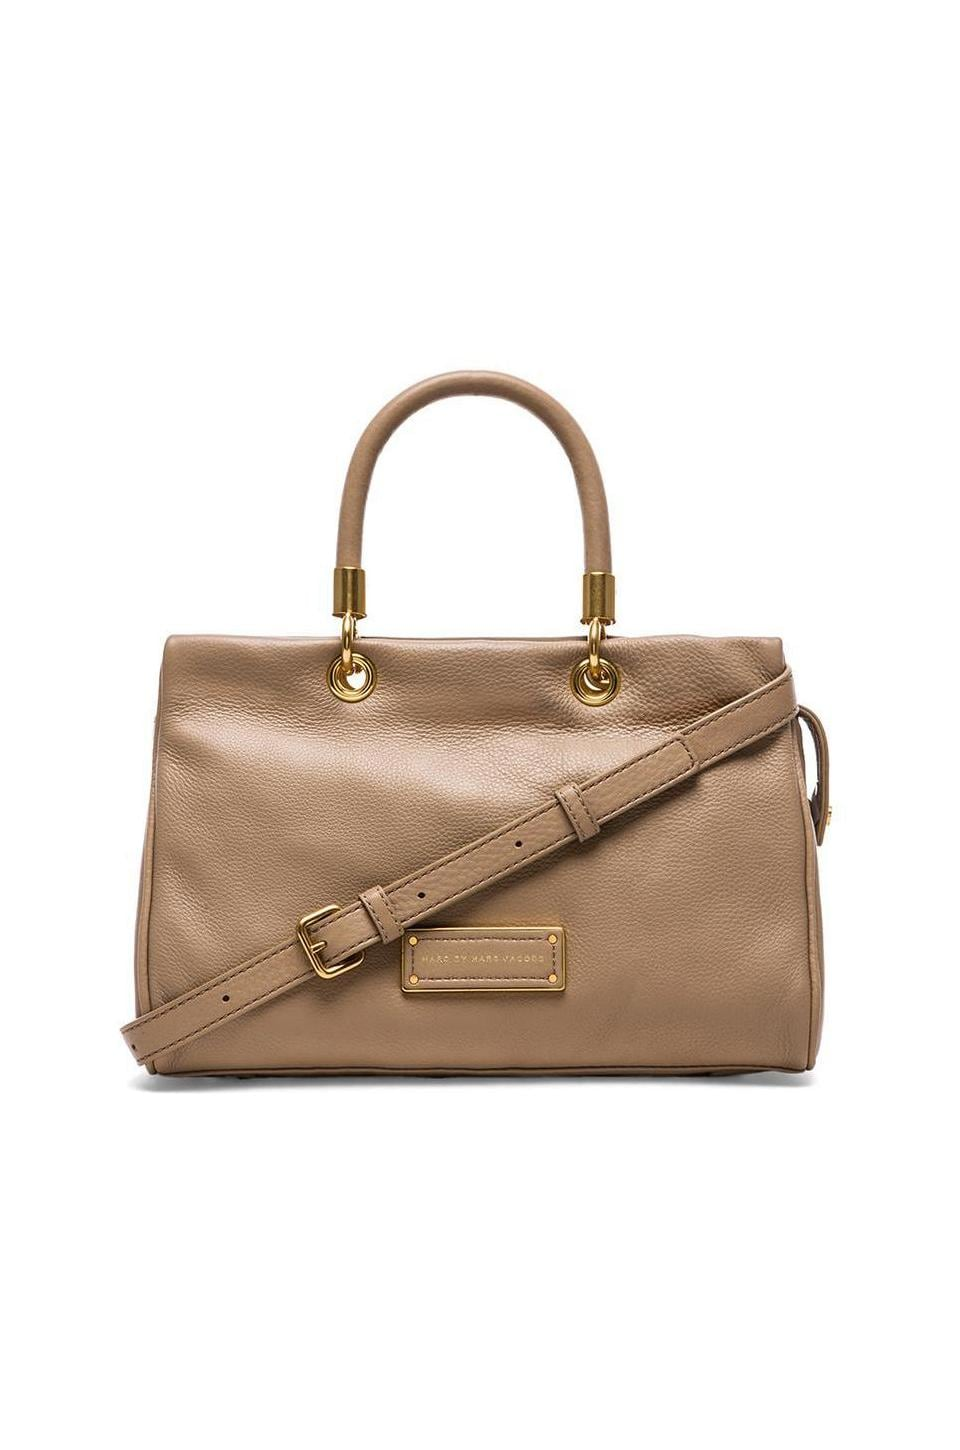 Marc by Marc Jacobs Too Hot to Handle Satchel in Tracker Tan